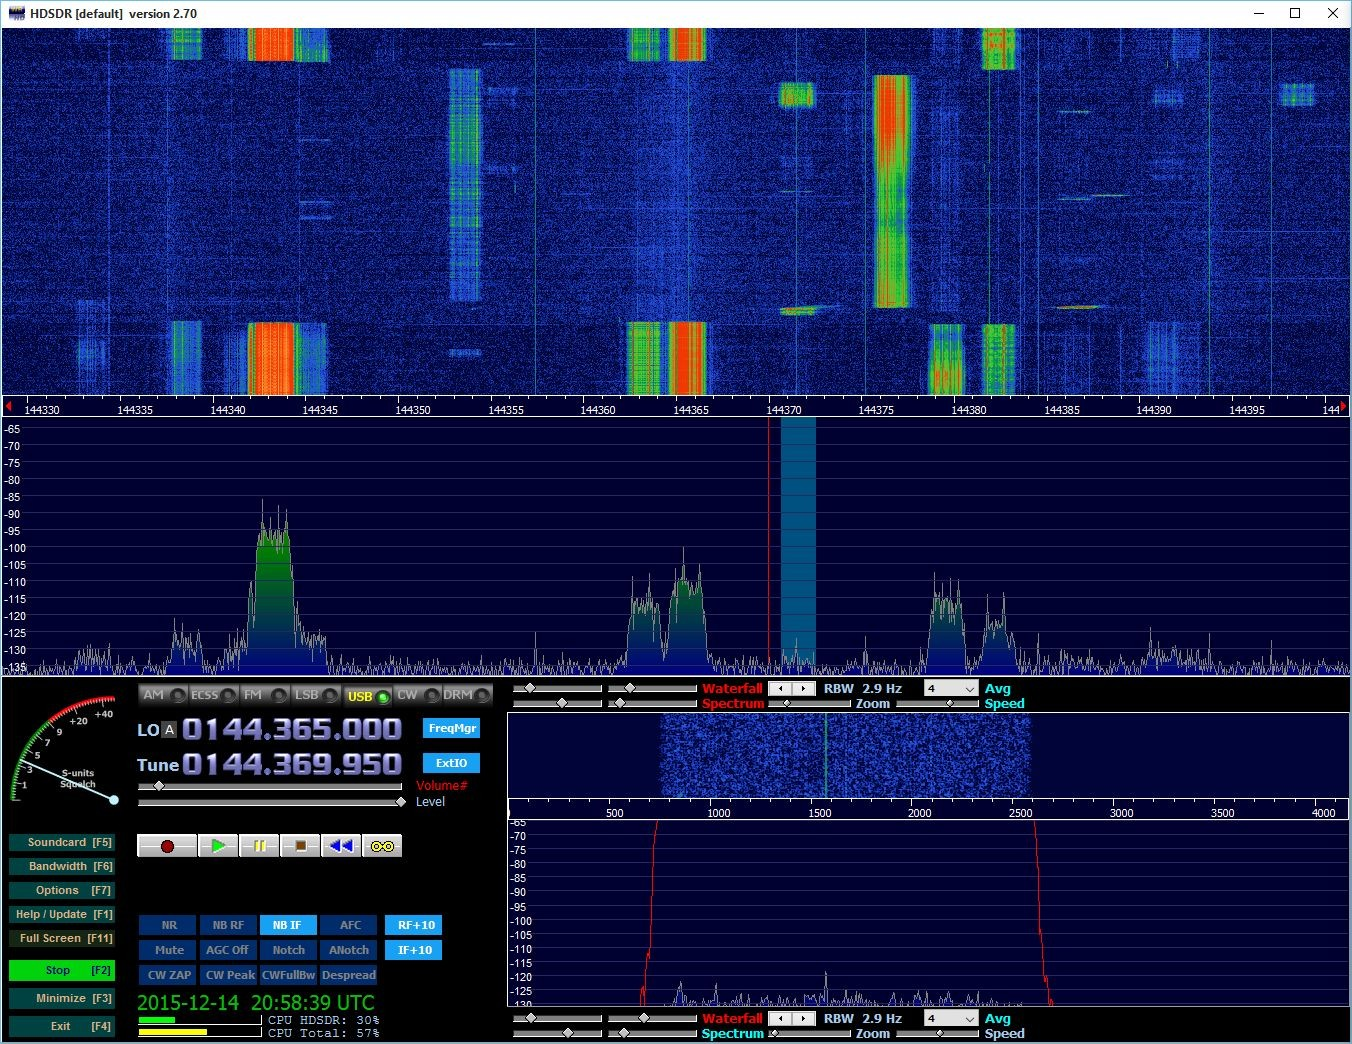 Bursts from RM1A calling CQ on 144.370